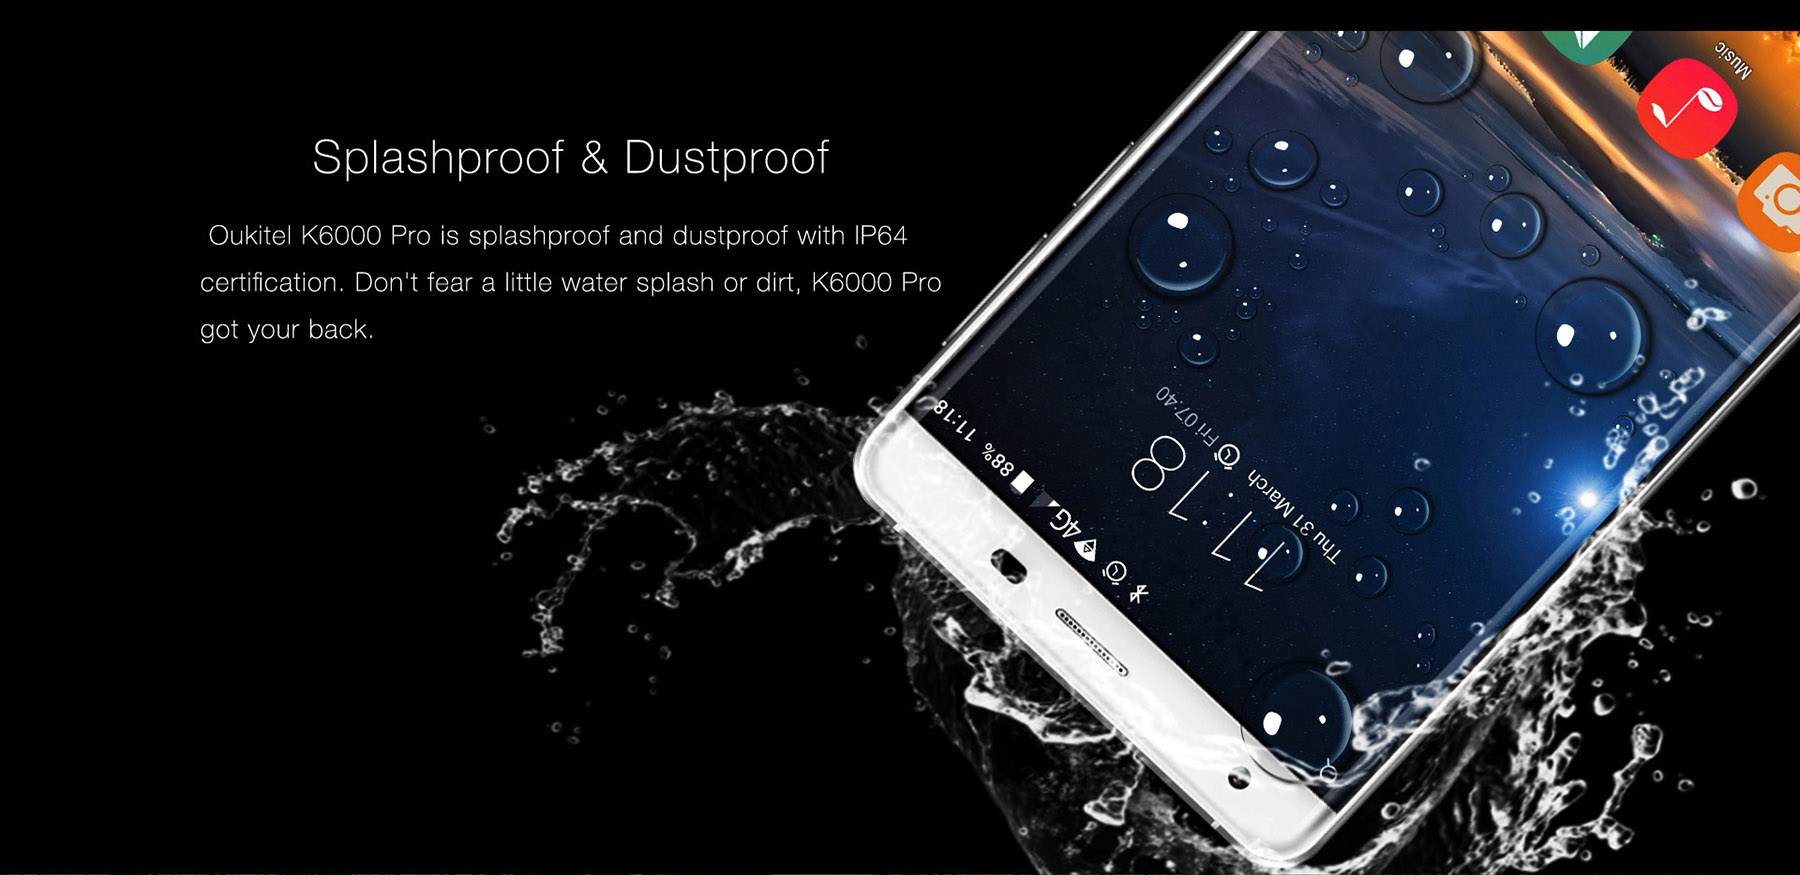 Oukitel K6000 Pro Android 6.0 6000mAh 4G Phablet 5.5 inch 2.5D Arc Dragontrail Glass Screen MTK6753 64bit Octa Core 3GB RAM 32GB ROM 16MP Rear Camera Press Fingerprint Sensor